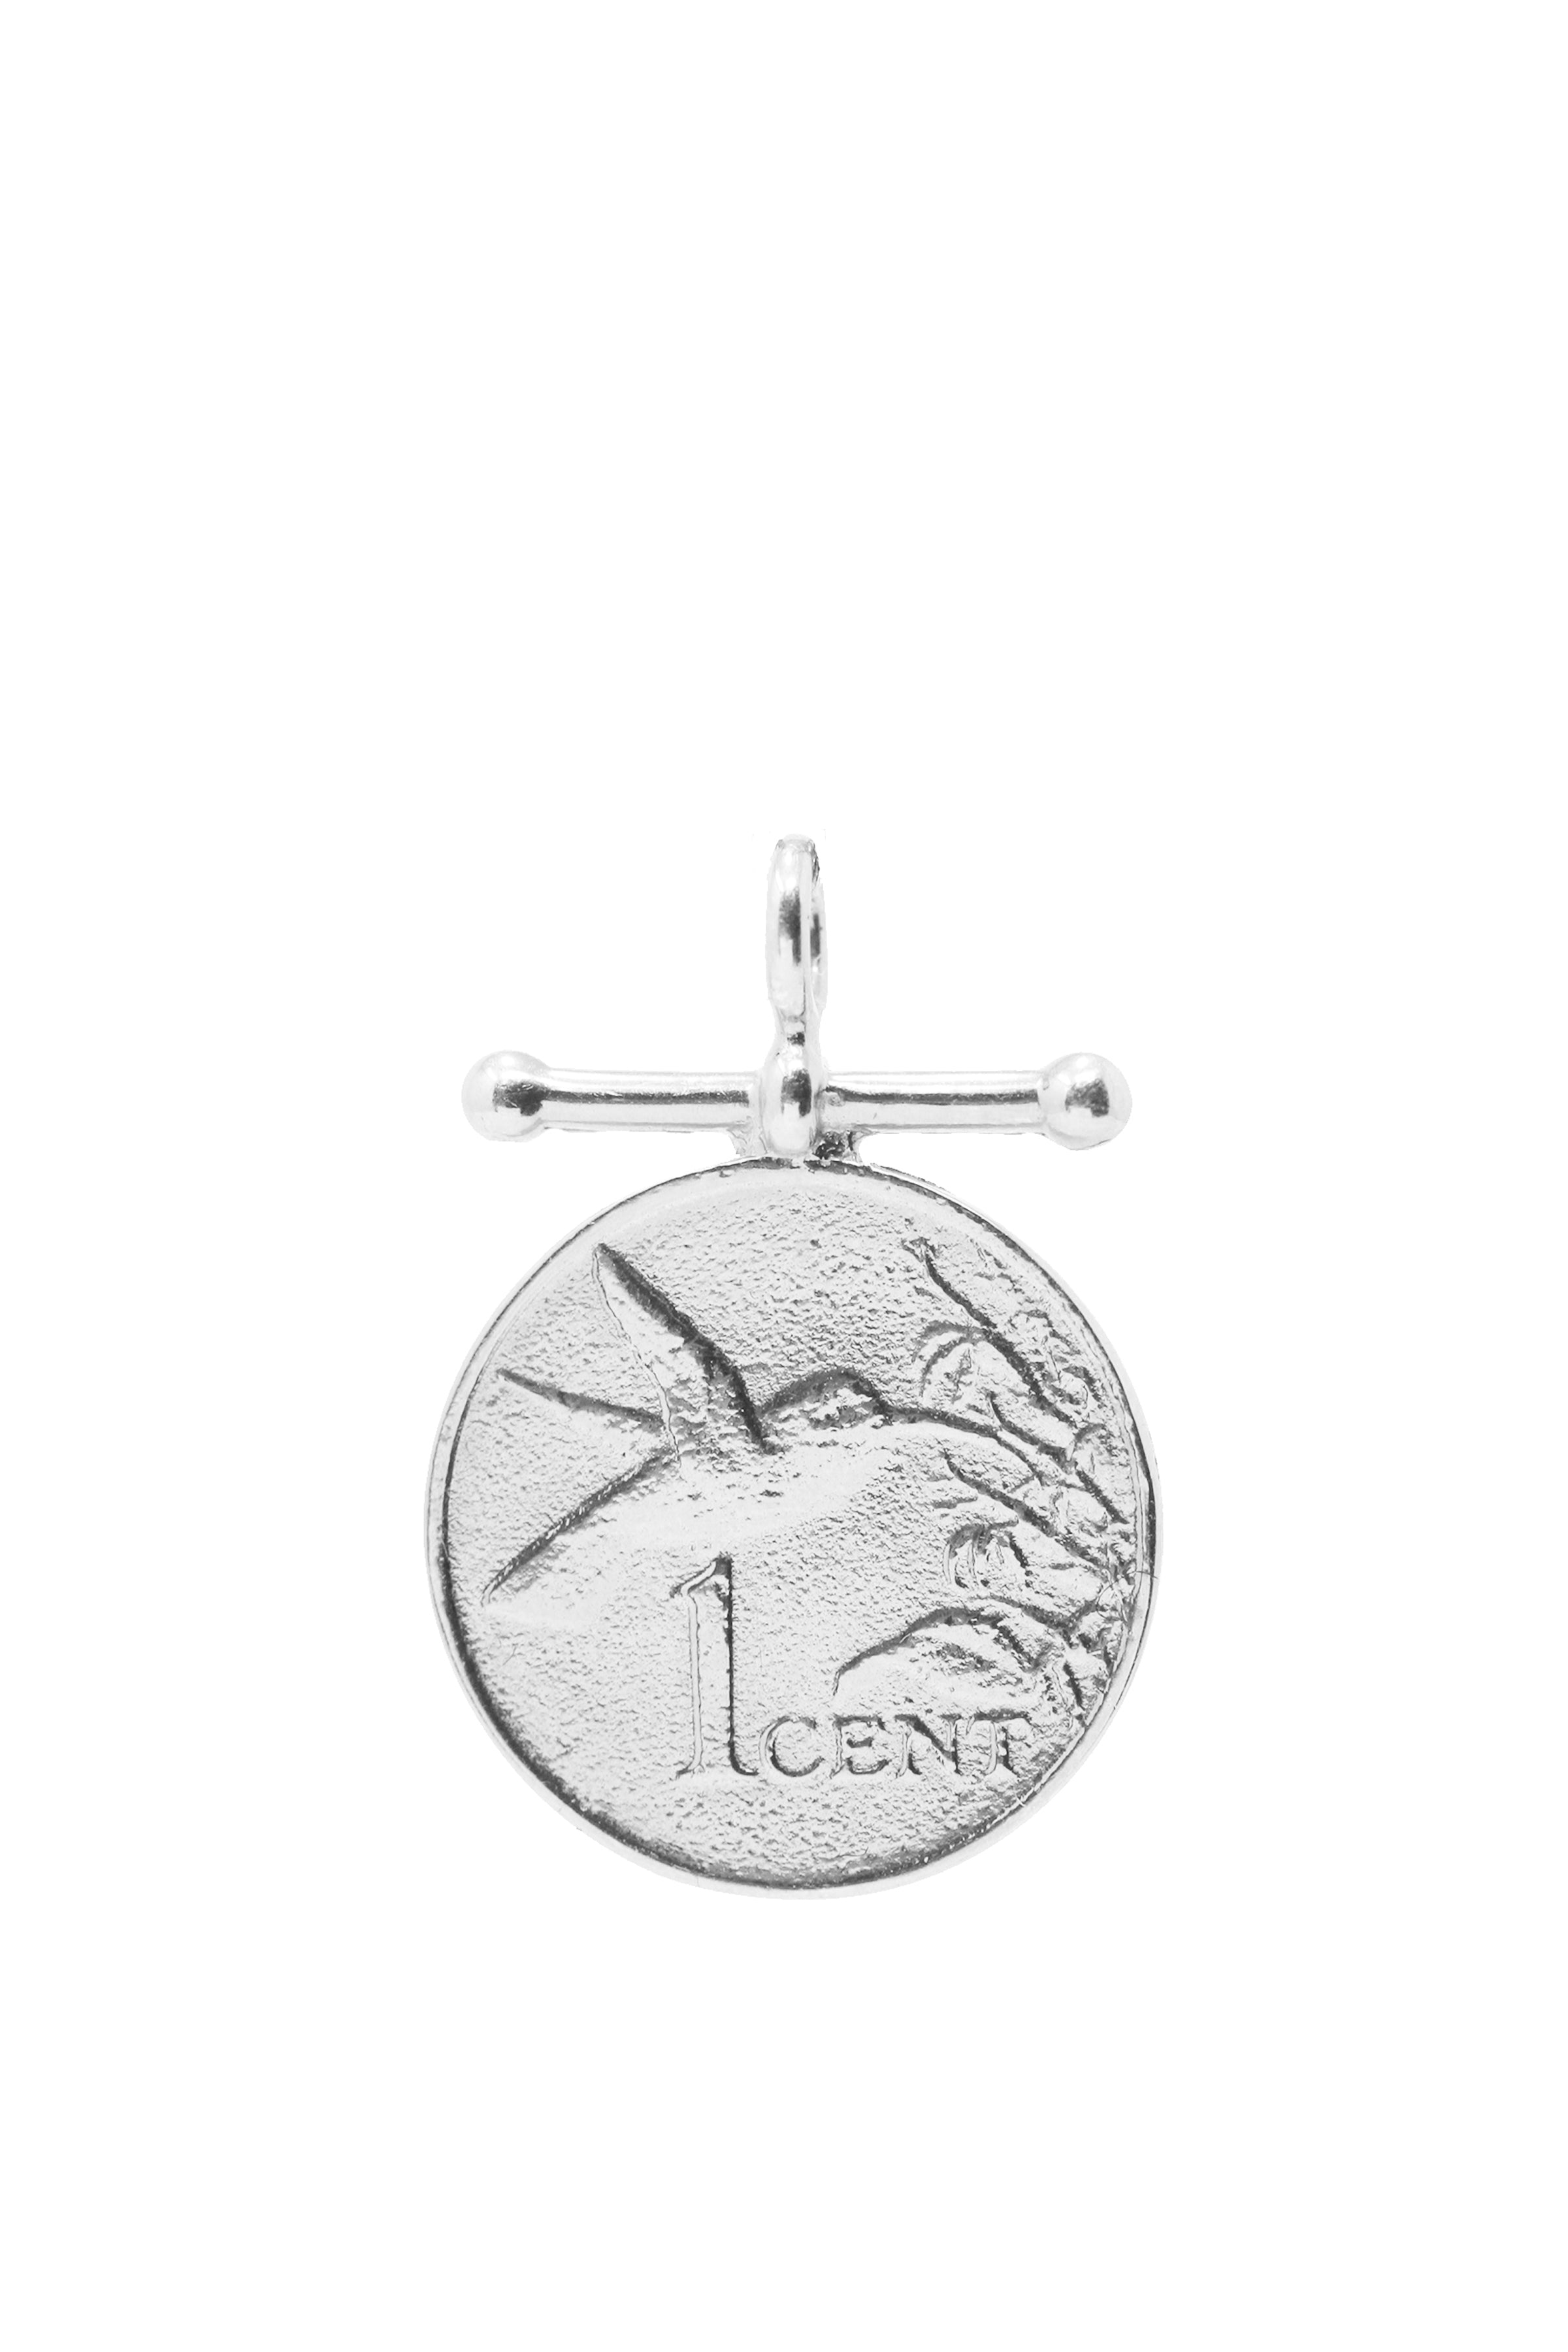 THE TRINIDAD and Tobago Hummingbird Charm in Silver